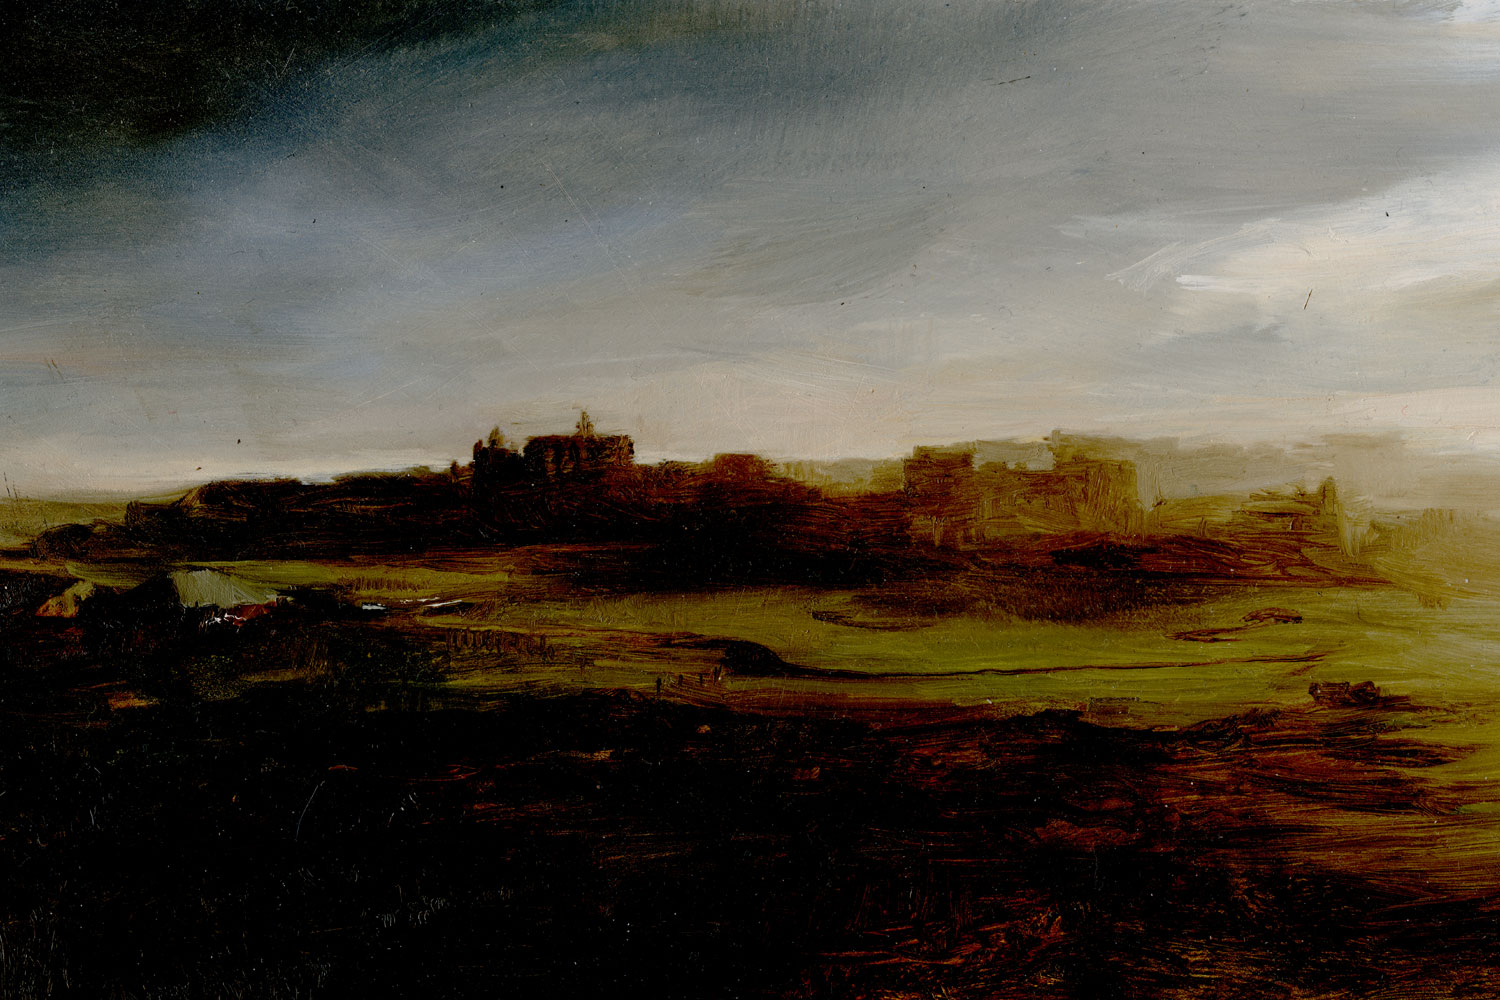 St Andrews at Dusk by Michael Klein